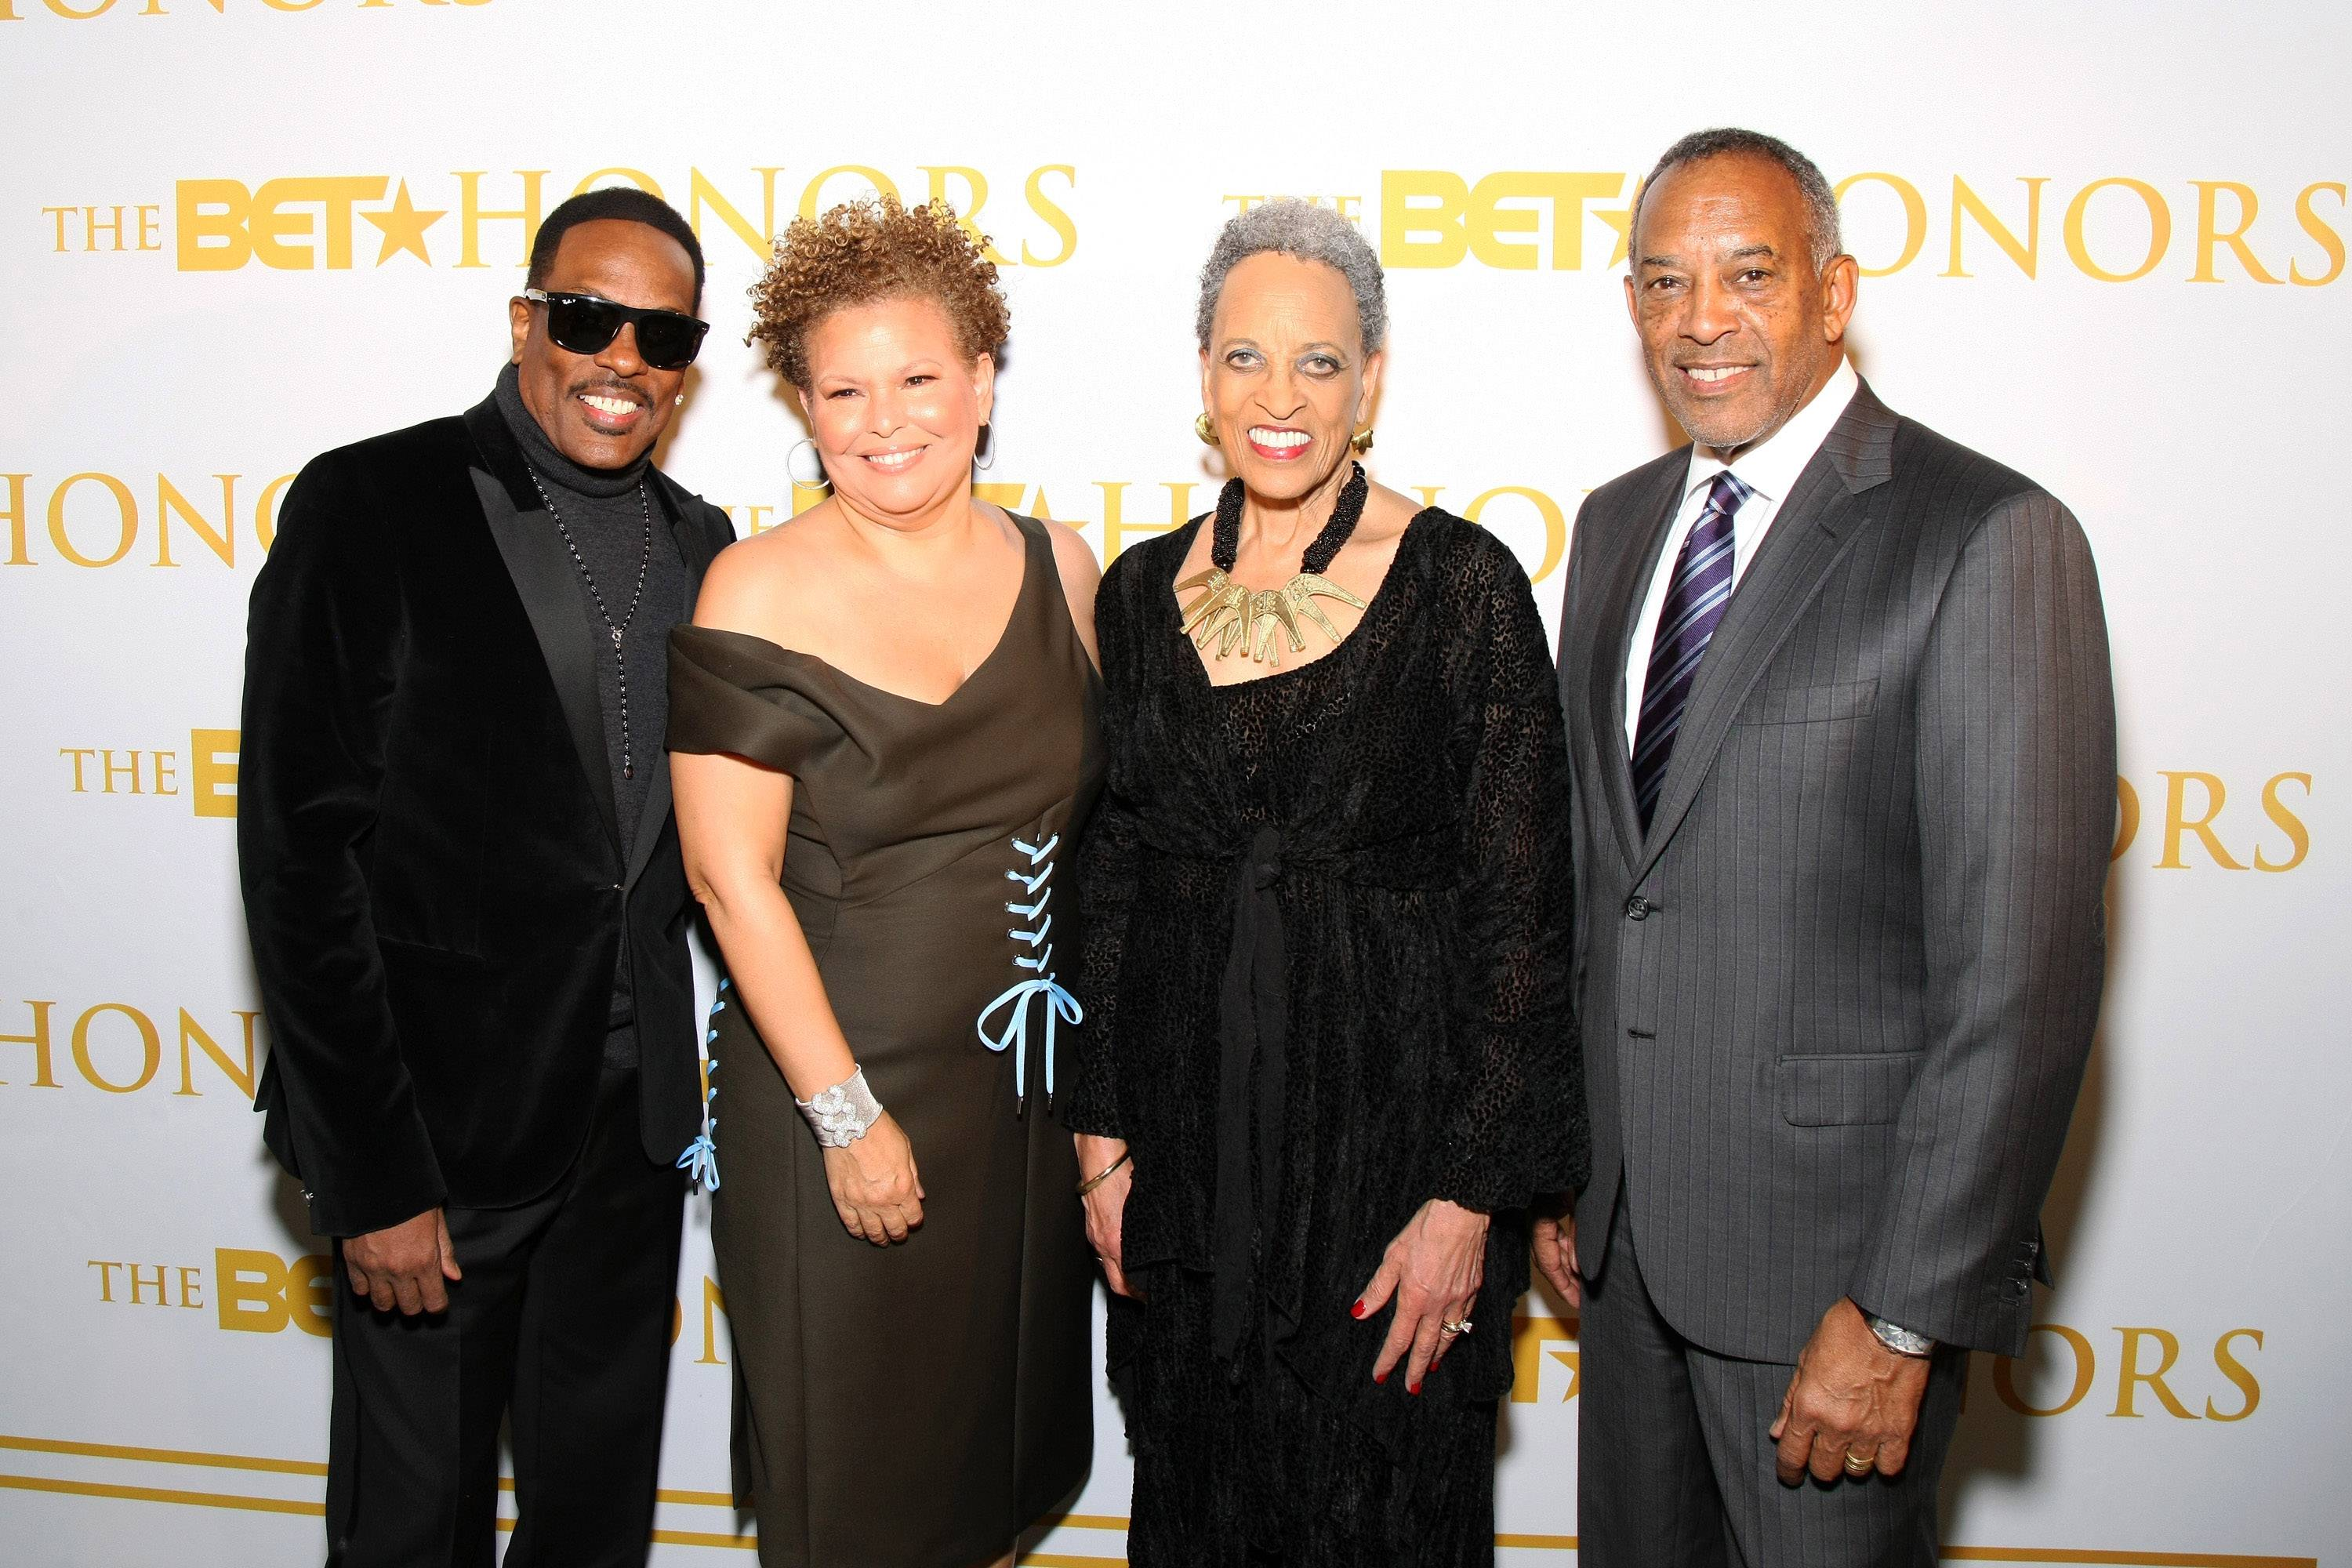 Conviviality at The BET Honors Weekend - Performer Charlie Wilson, Debra Lee and honorees Dr. Johnnetta Betsch Cole and John W. Thompson are snapped dressed to impressed ahead of the taping of The BET Honors.(Photo: Bennett Raglin/BET/Getty Images for BET)